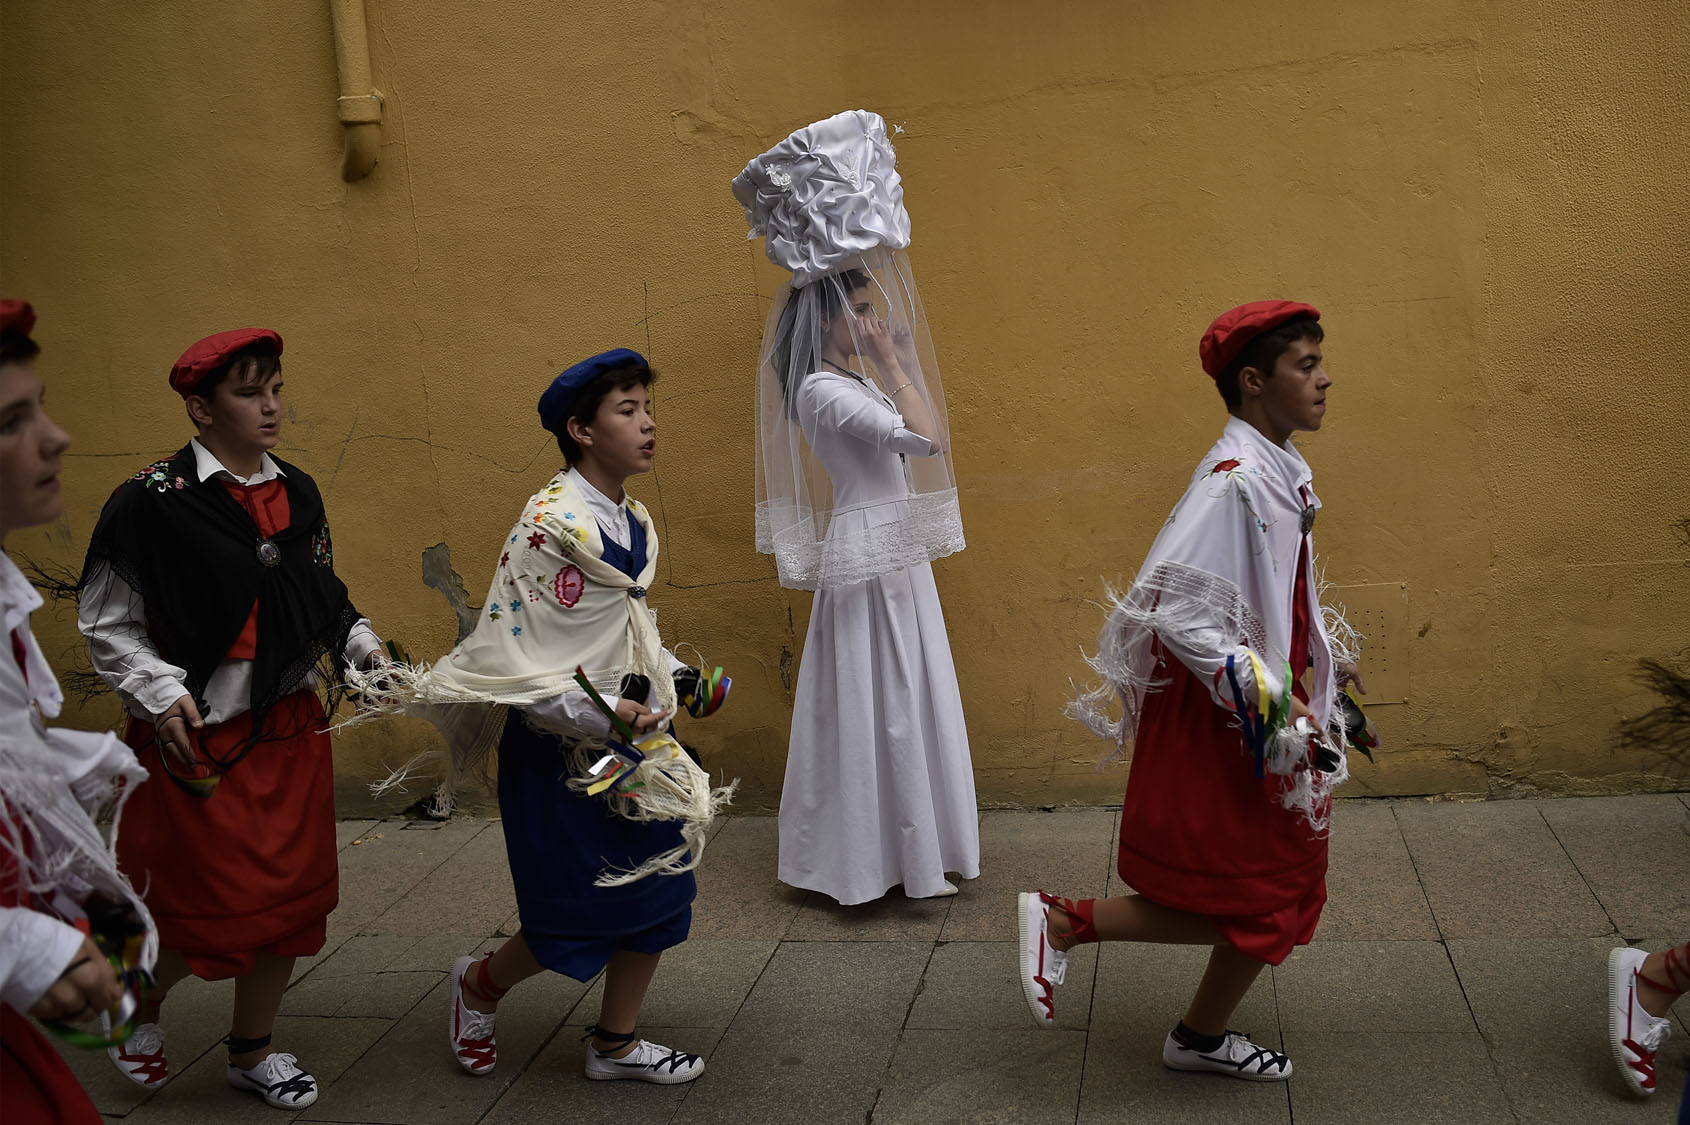 Bread Procession of the Saint in Spain